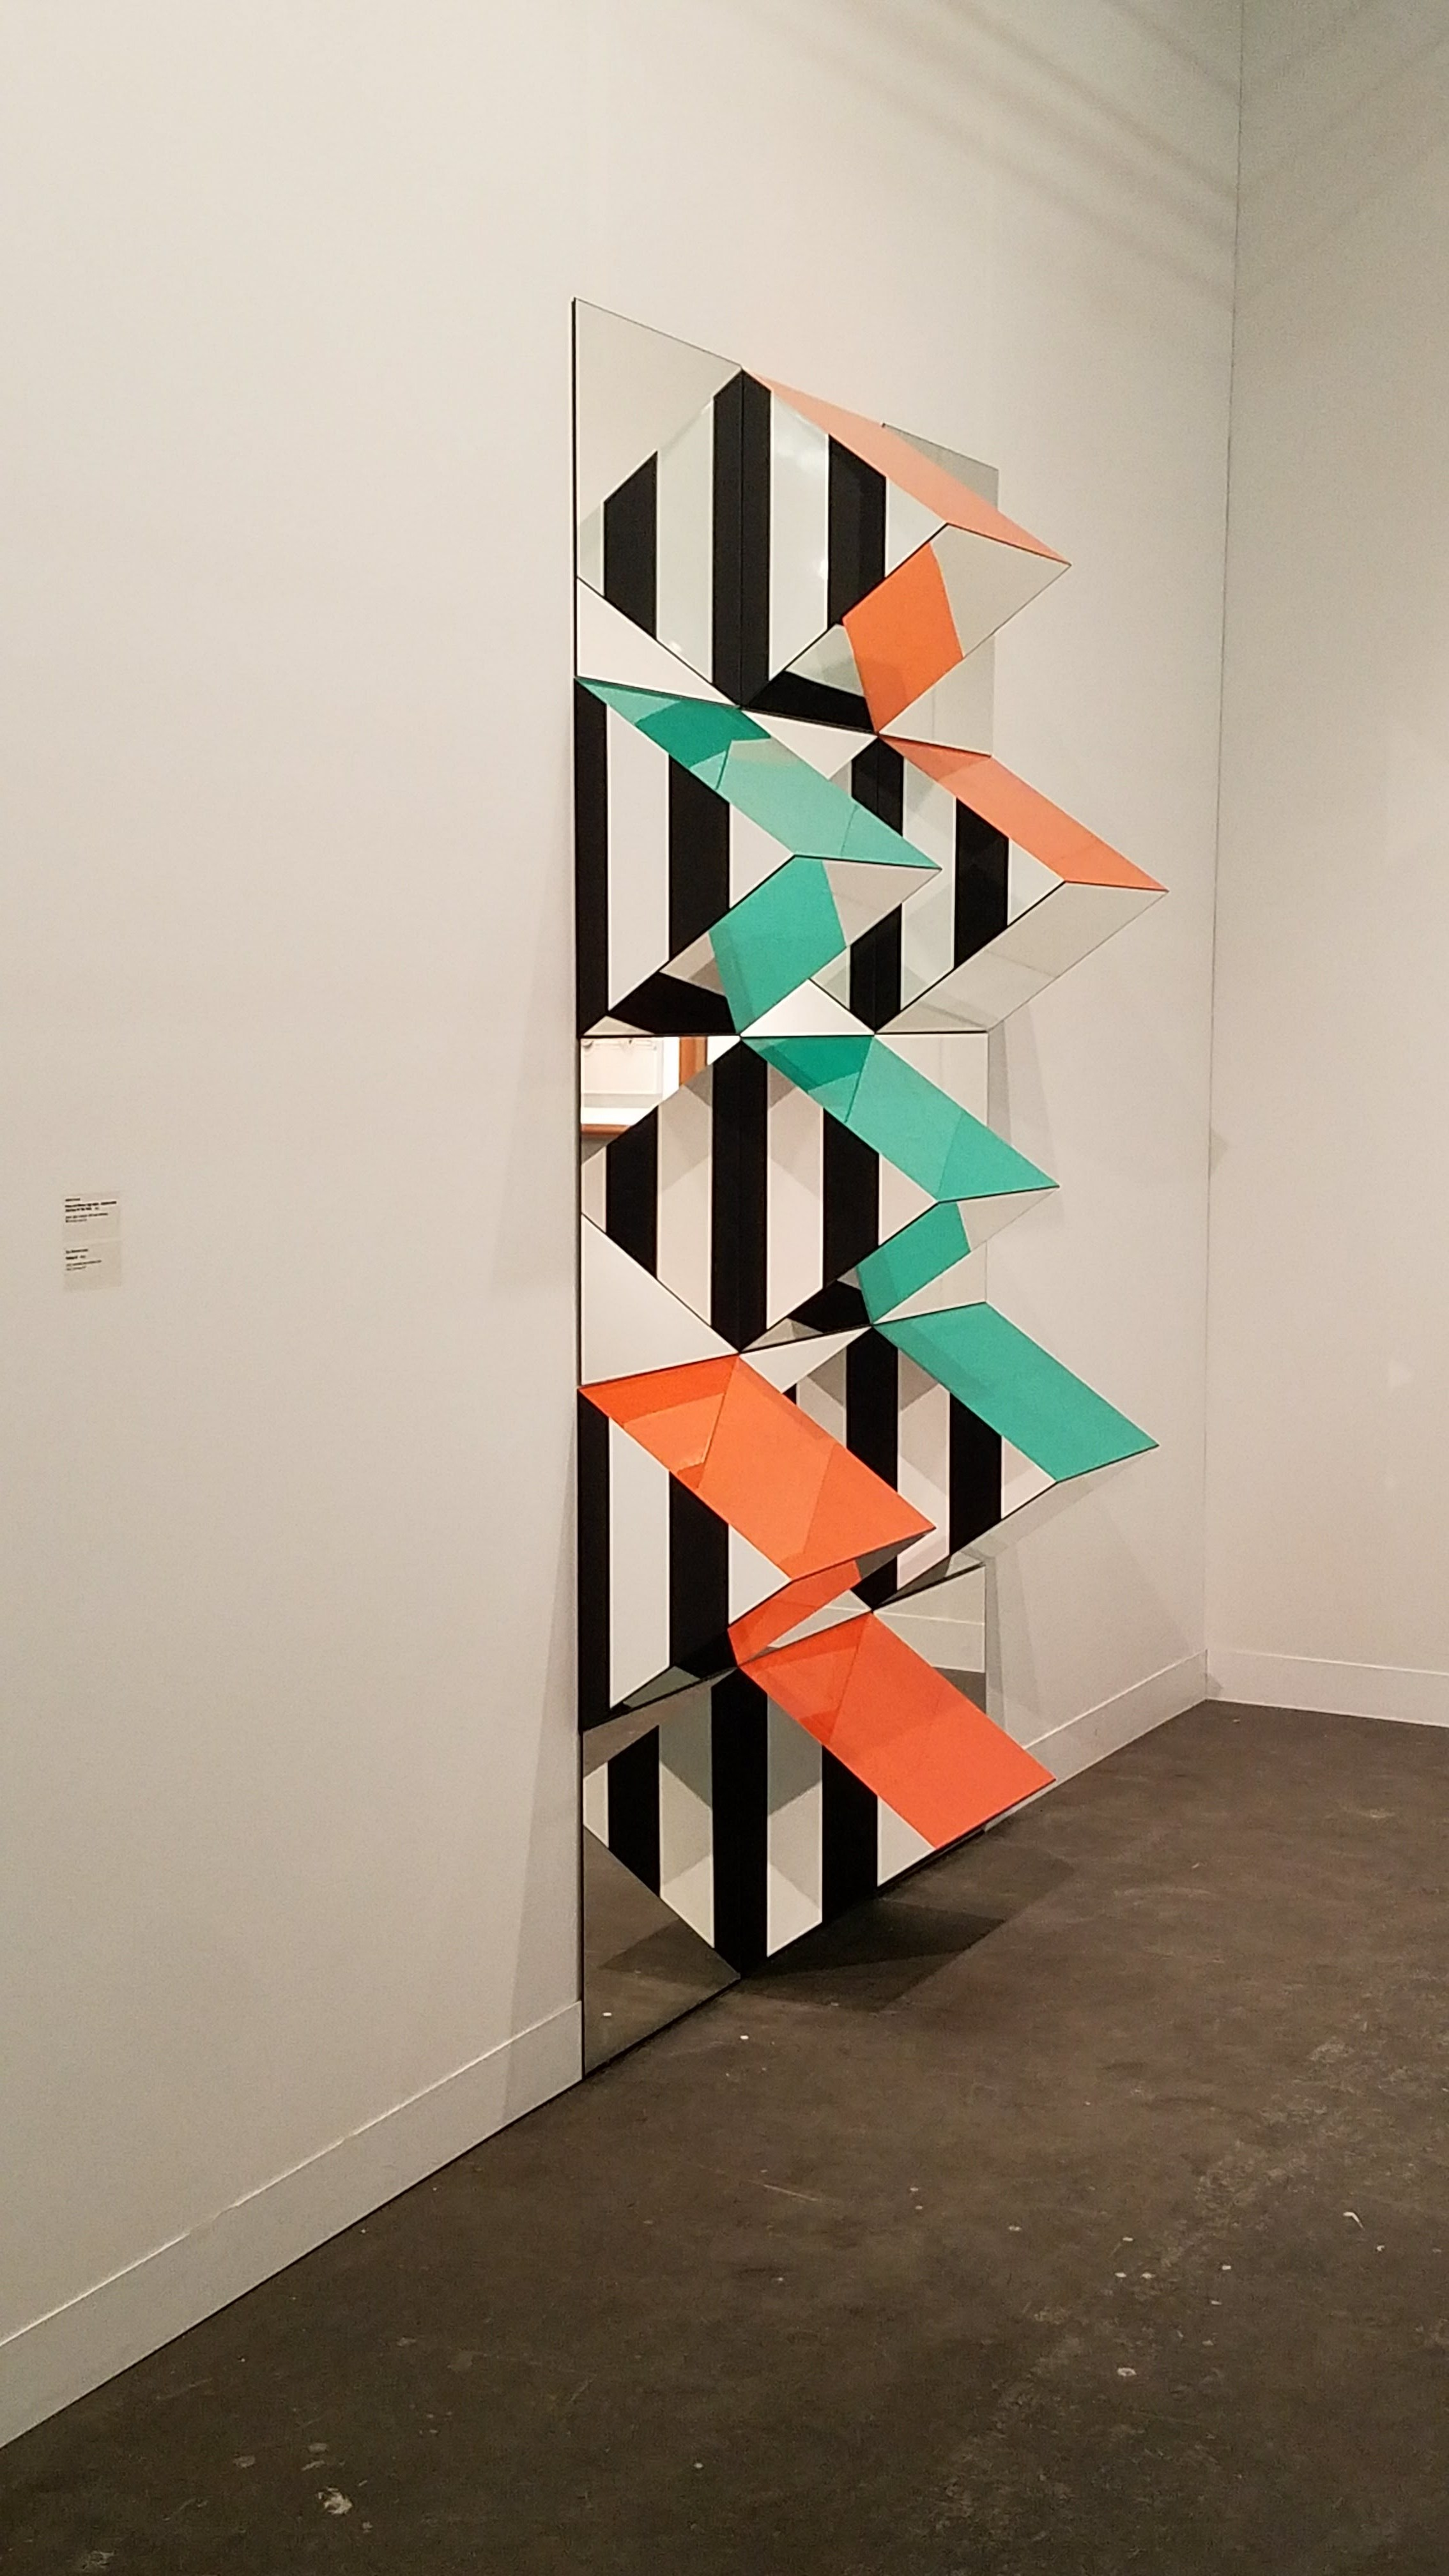 Daniel Buren, Prisms and Mirrors, high reliefs, situated work 2016/2017 for São Paulo, 2017, Courtesy of Galeria Nara Roesler